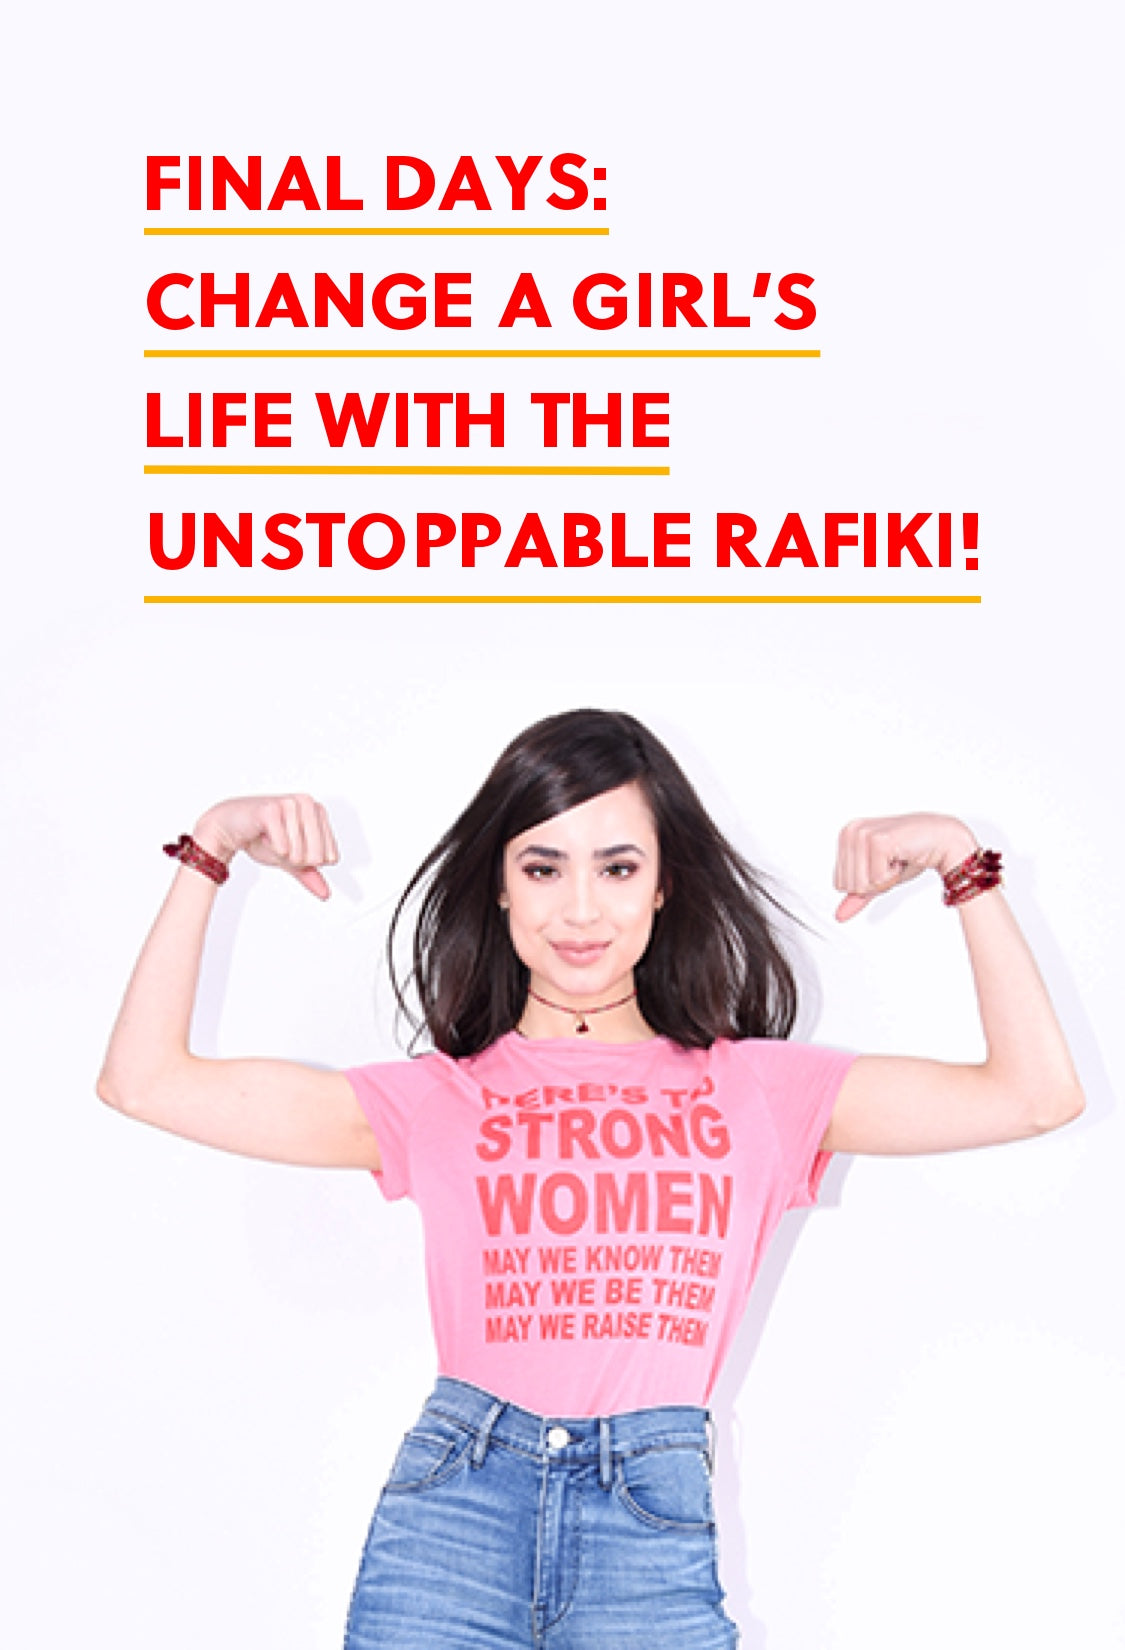 Final days: change a girl's  life with the  Unstoppable Rafiki!